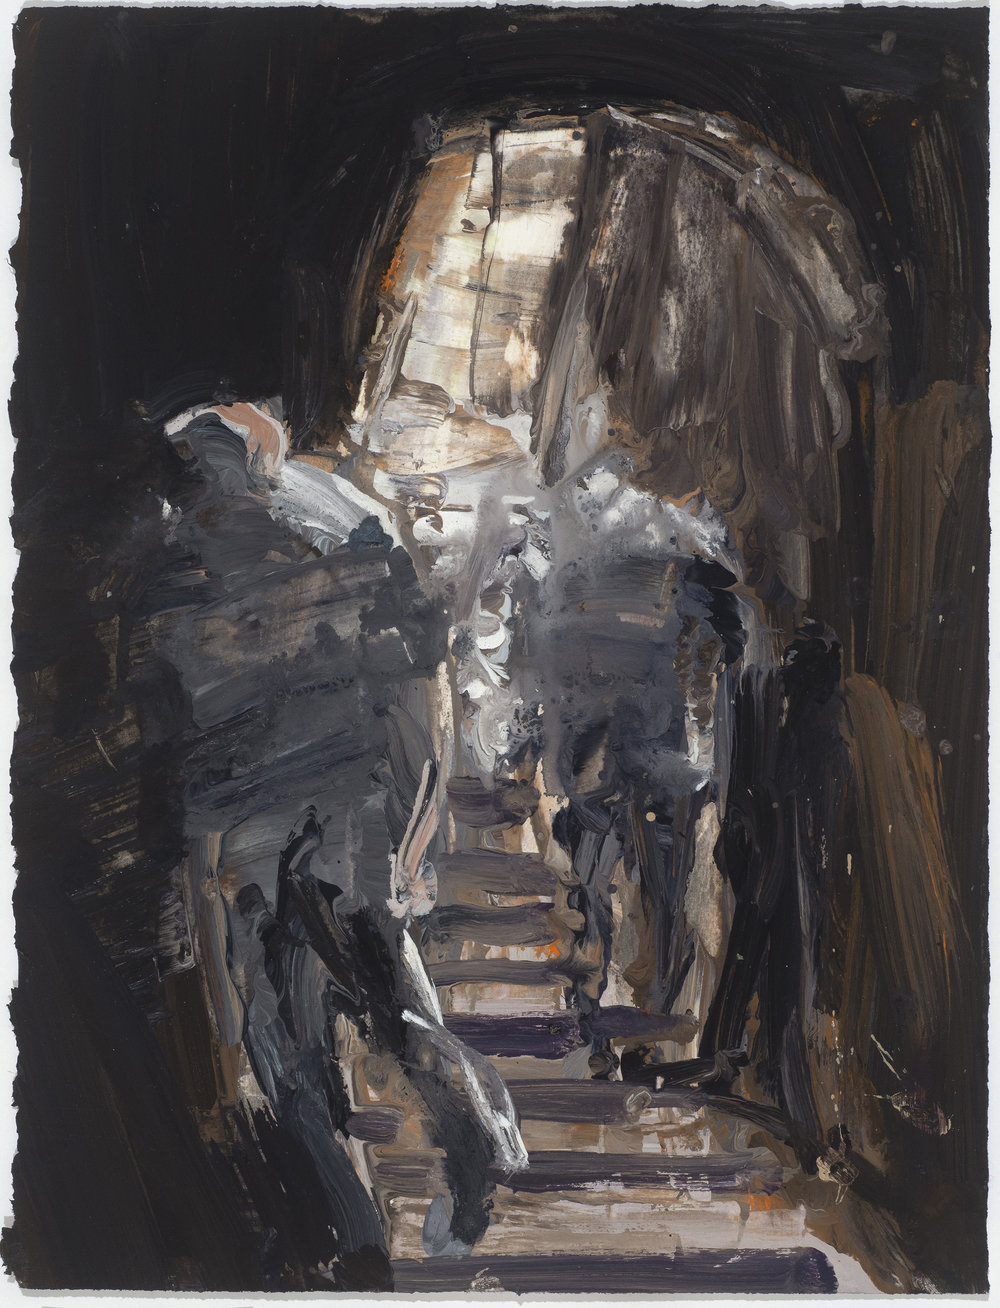 Cave 10/16  洞穴 10/16   Euan Macleod , 2016  Acrylic on paper, 40 x 30 cm, HKD 9,800 framed